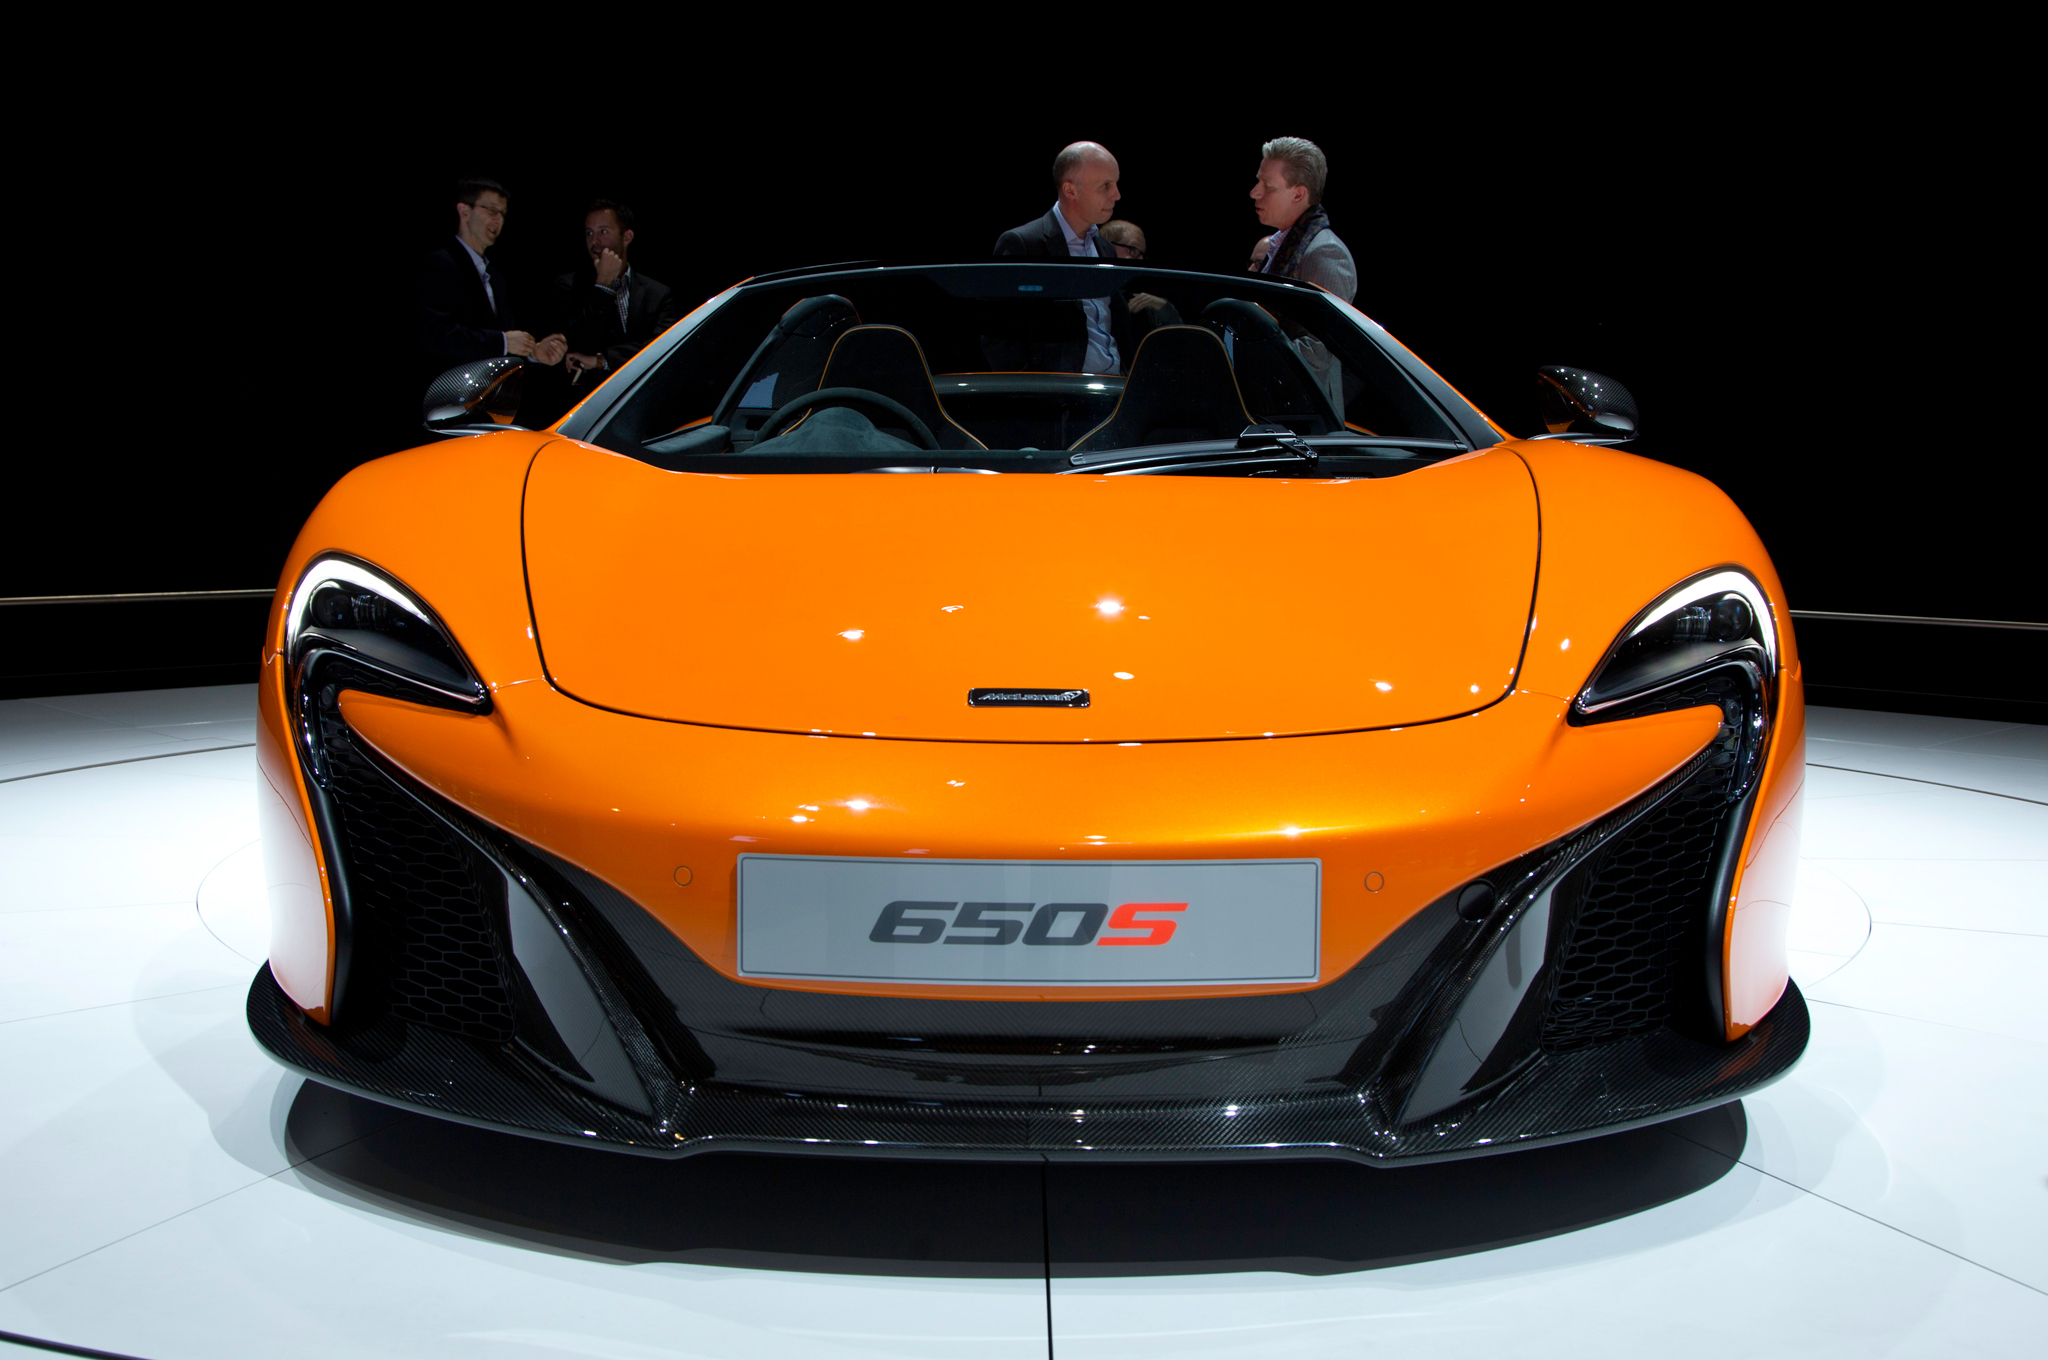 2015 mclaren 650s changes from 12c type 850 cars performance reviews and test drive. Black Bedroom Furniture Sets. Home Design Ideas